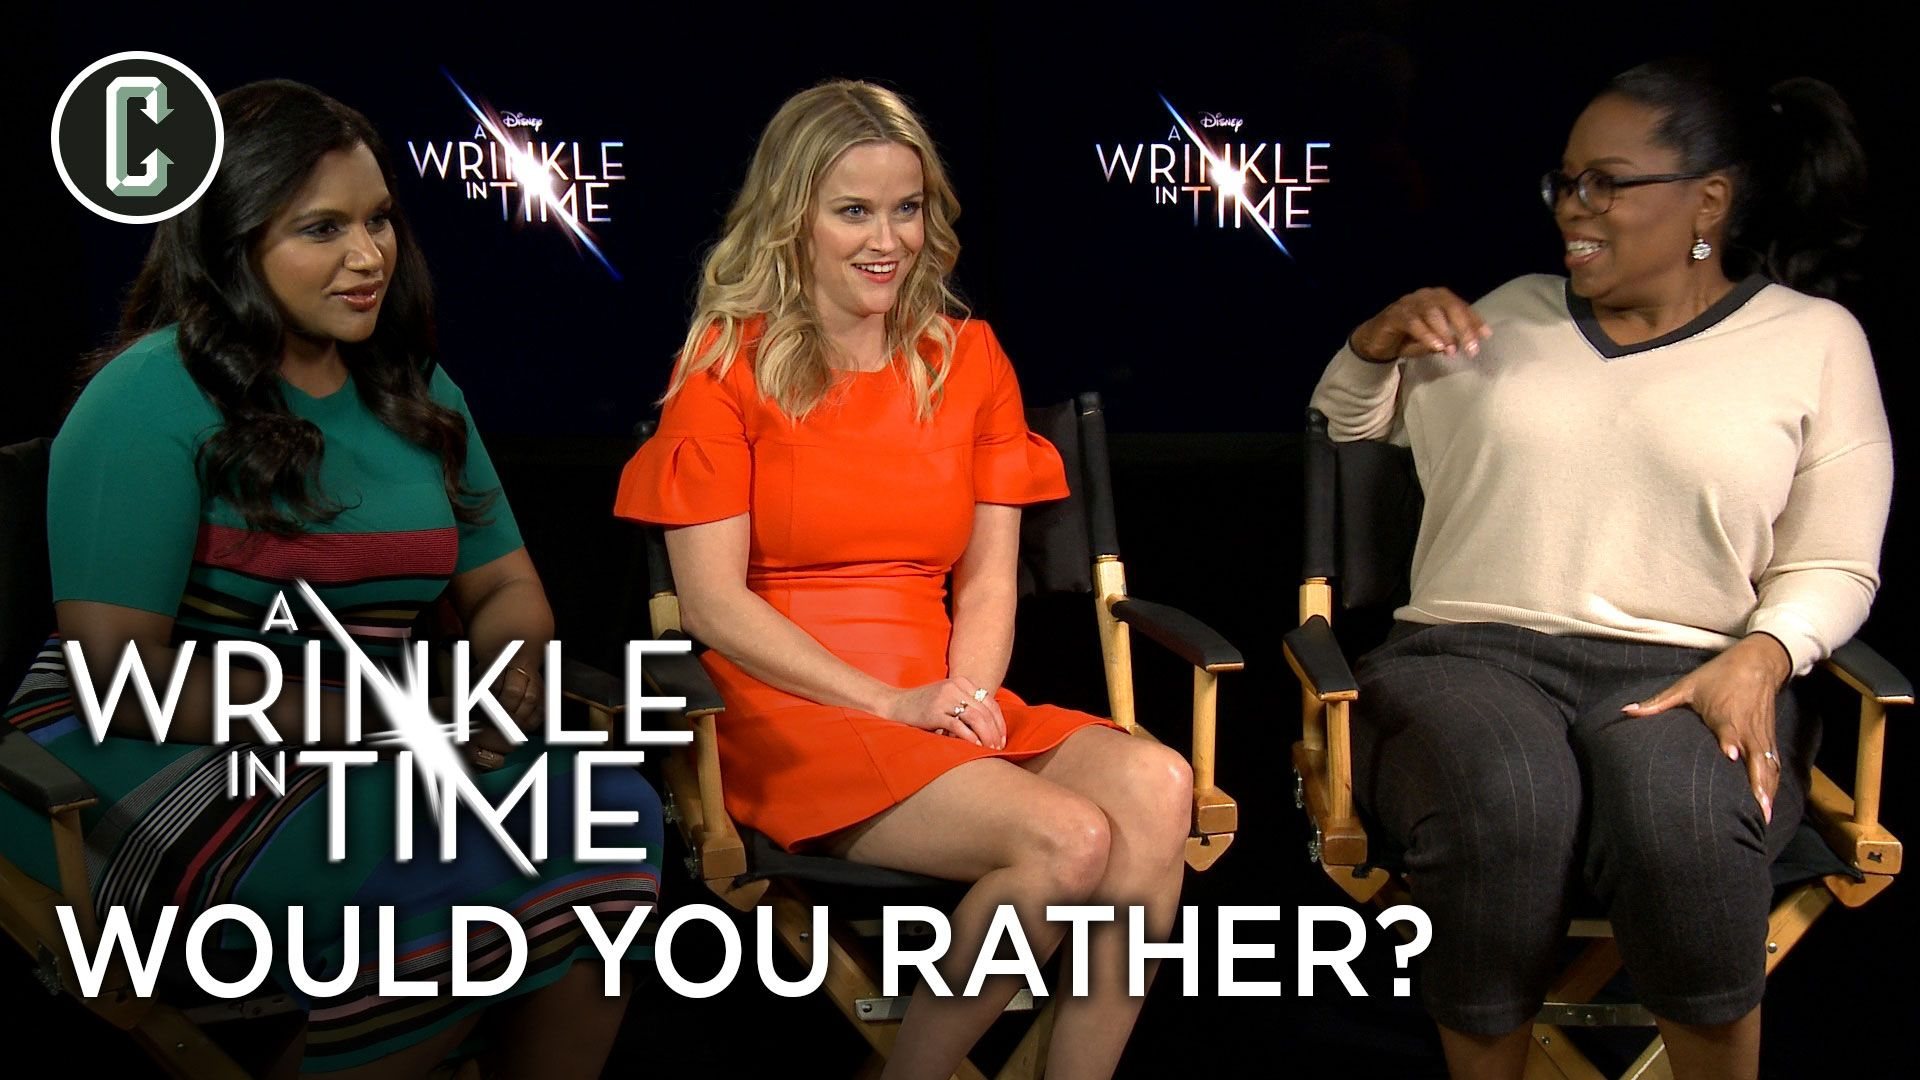 oprah winfrey reese witherspoon would you rather a wrinkle in time - See: Oprah, Reese Witherspoon & & Mindy Kaling Weigh in increasing of Streaming Services